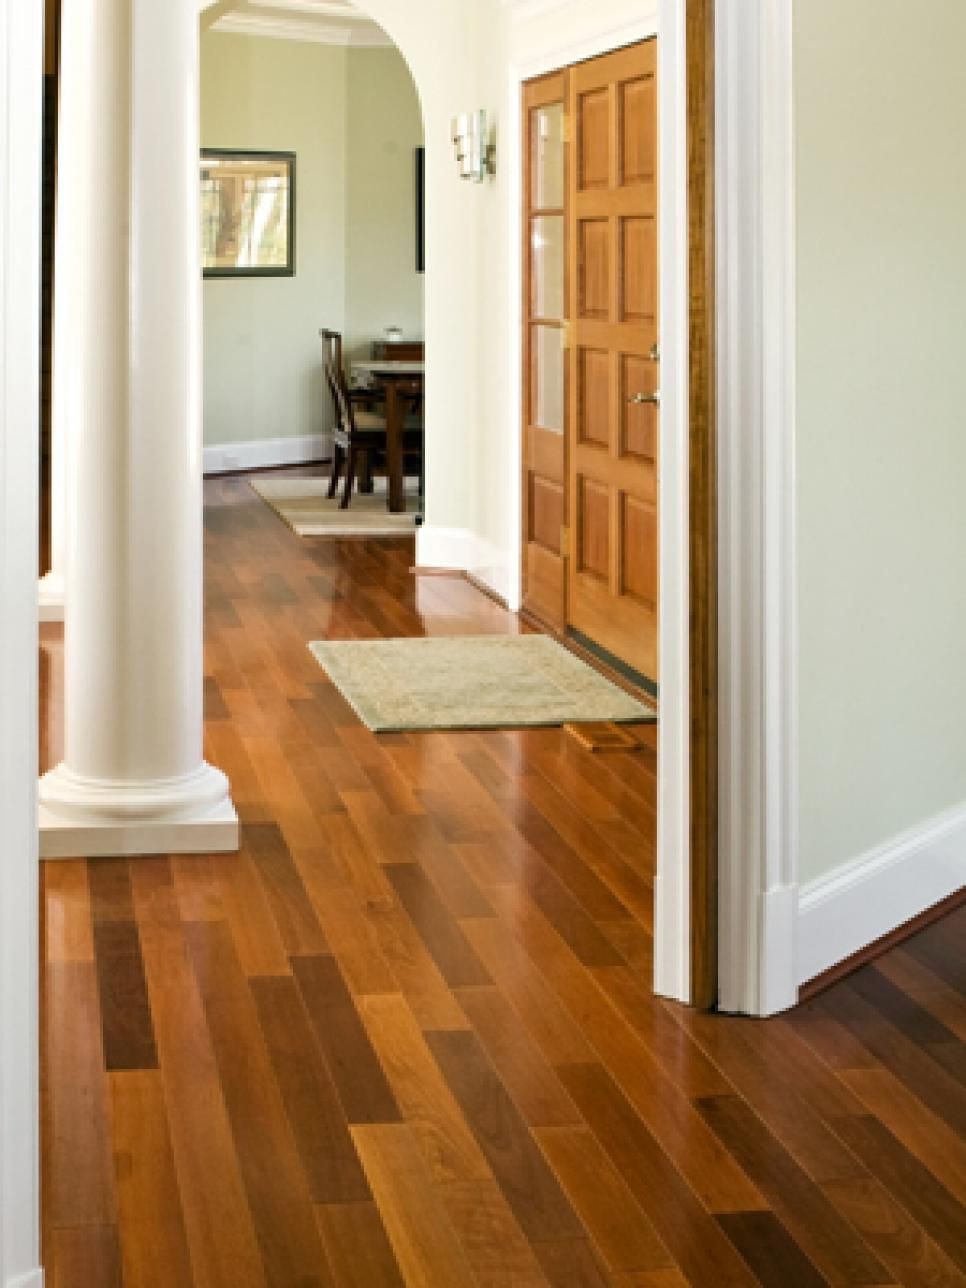 can you stain hardwood floors a different color of 10 stunning hardwood flooring options interior design styles and pertaining to 10 stunning hardwood flooring options interior design styles and color schemes for home decorating